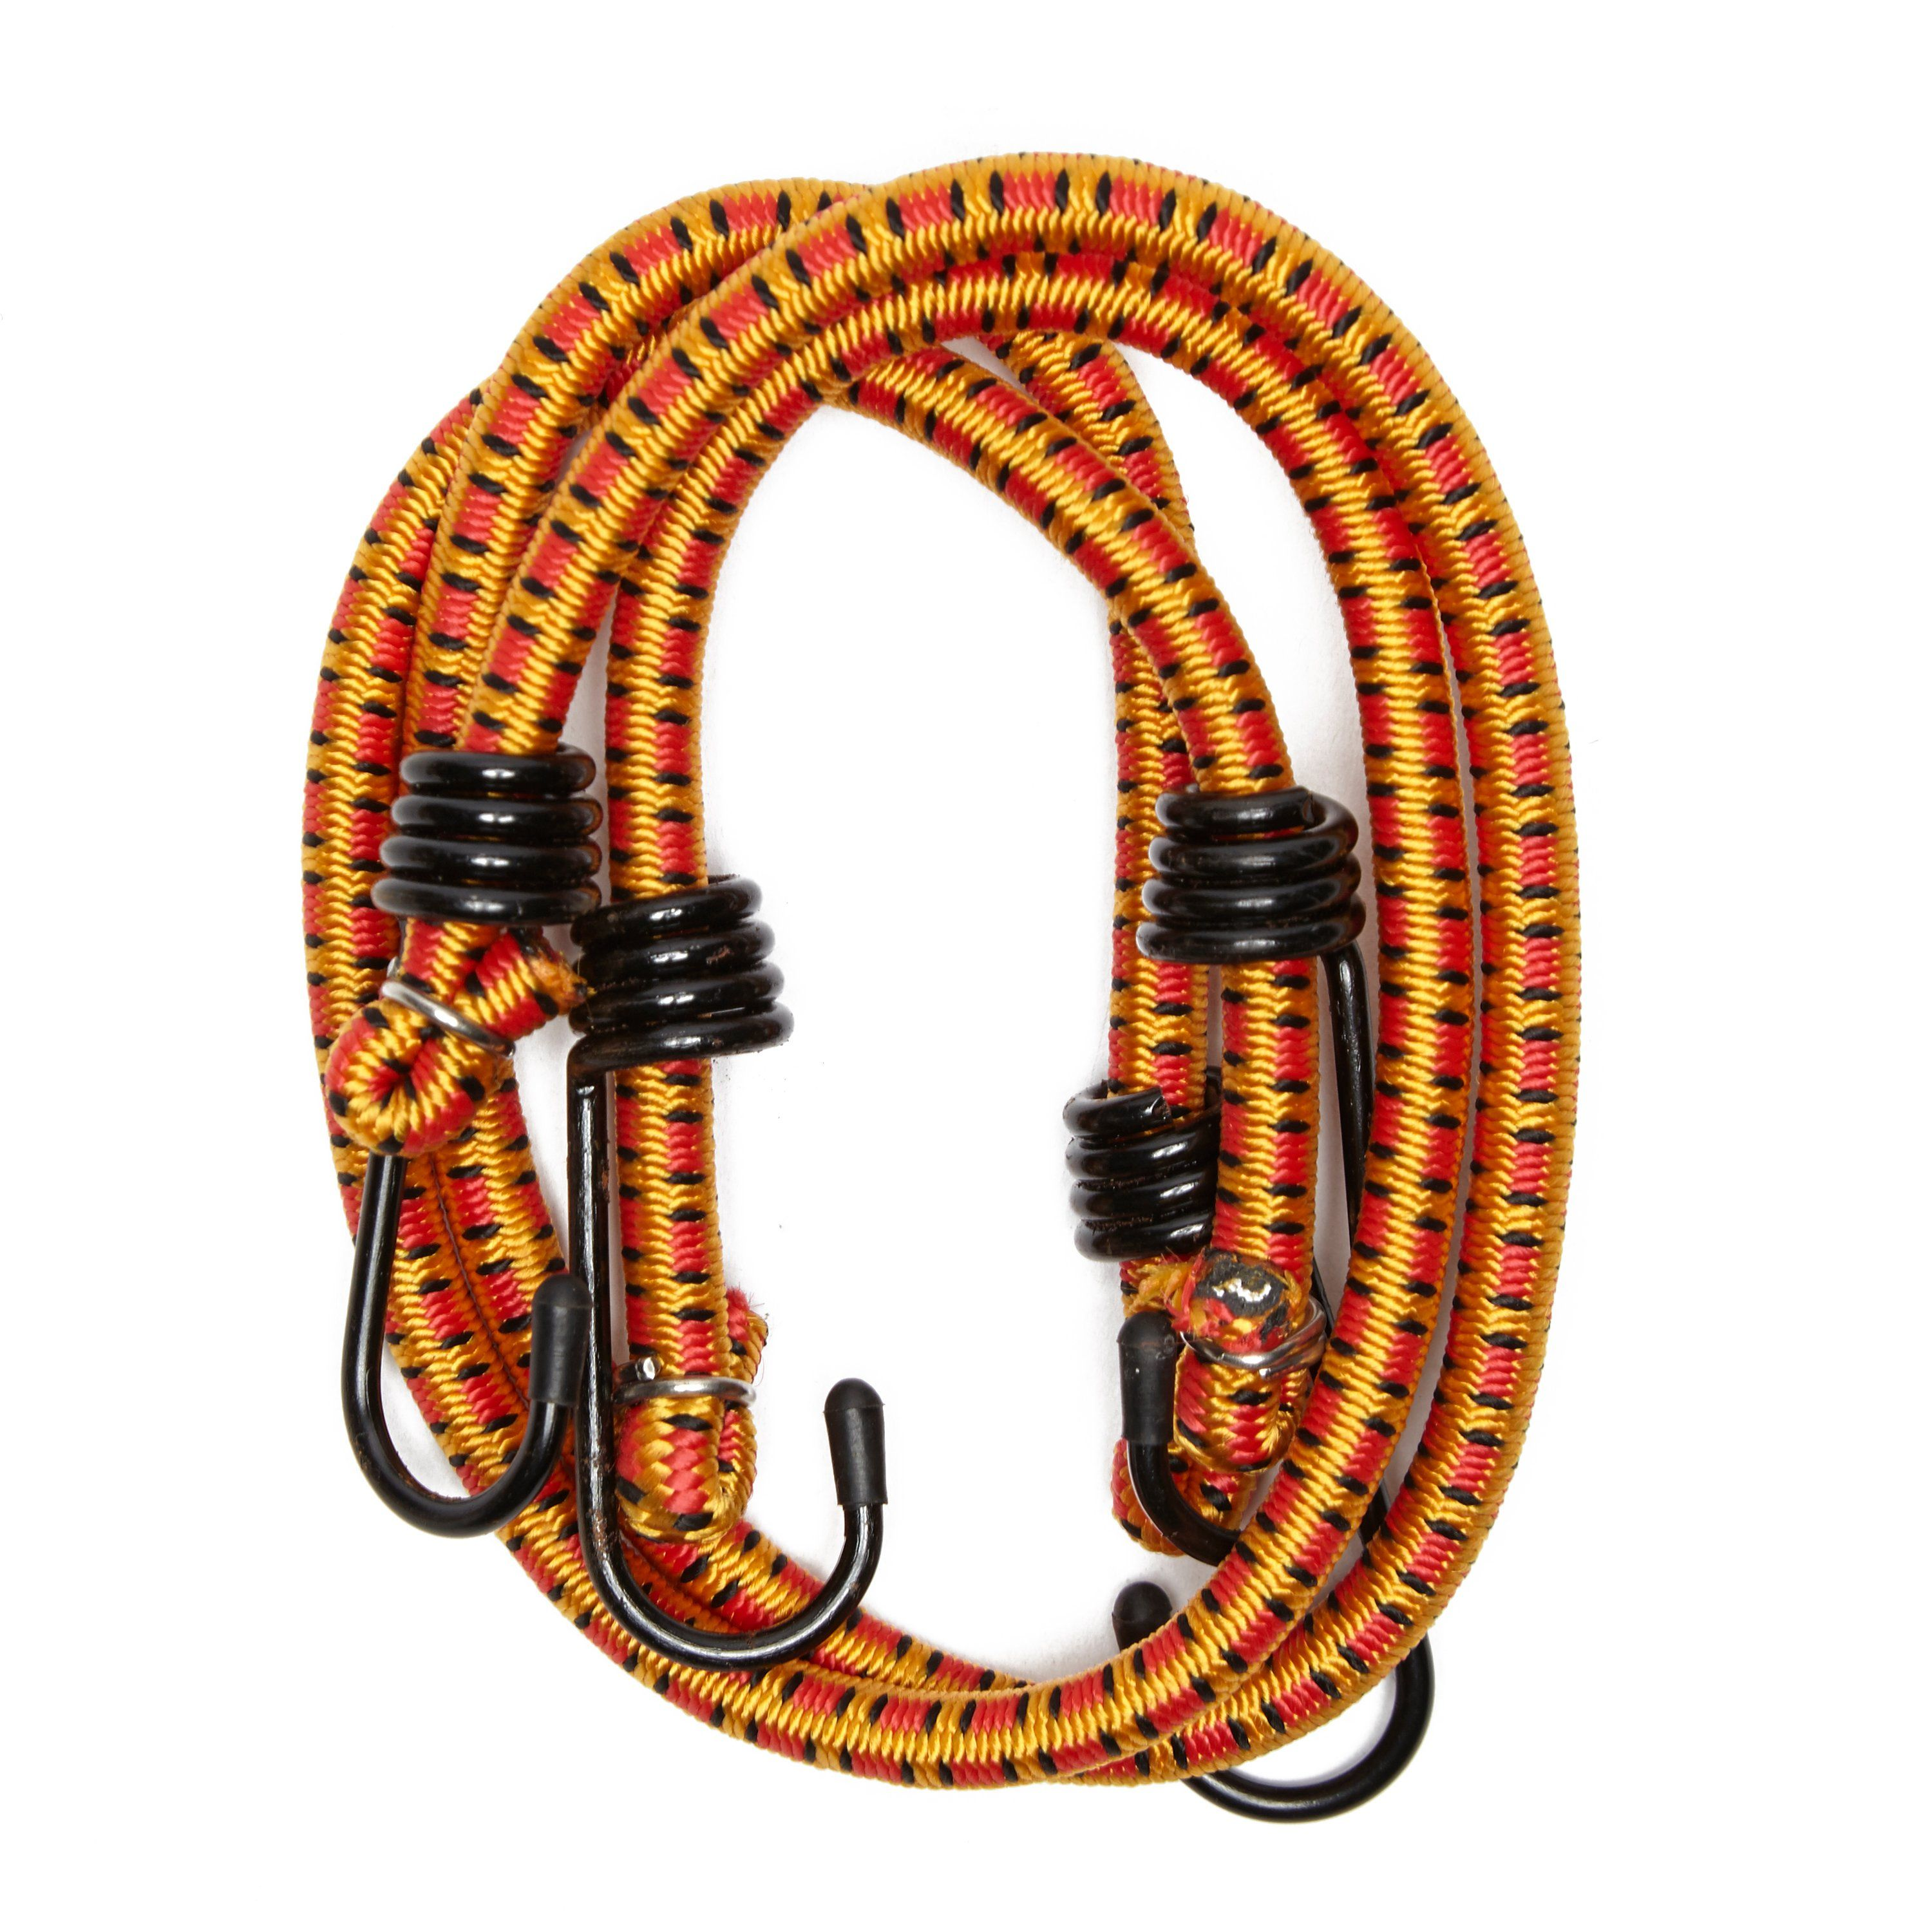 "MOUNTNEY 24"" Luggage Elastics (Pair)"